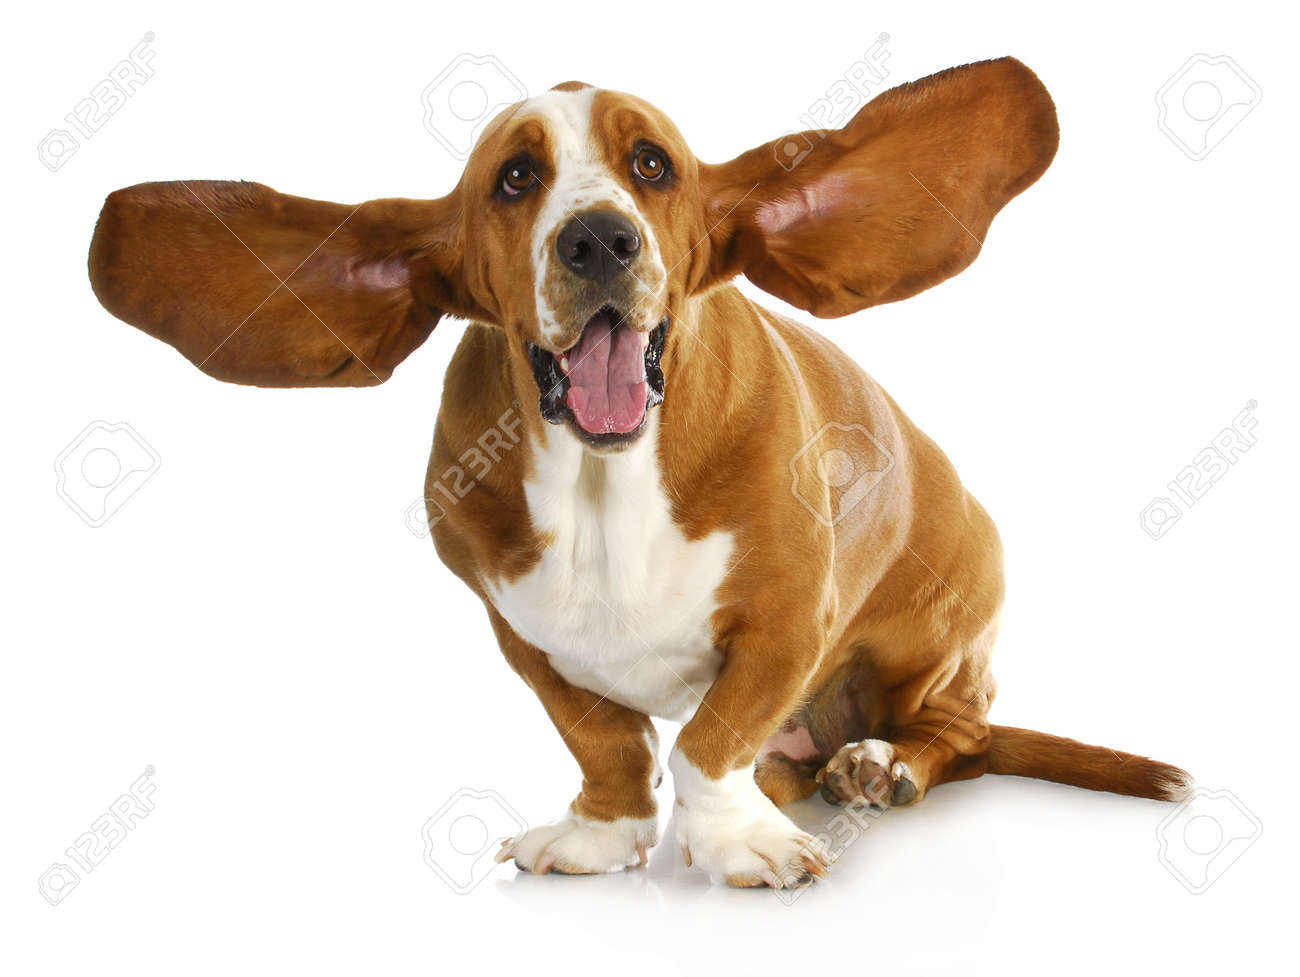 dog ears stock photos royalty free dog ears images and pictures